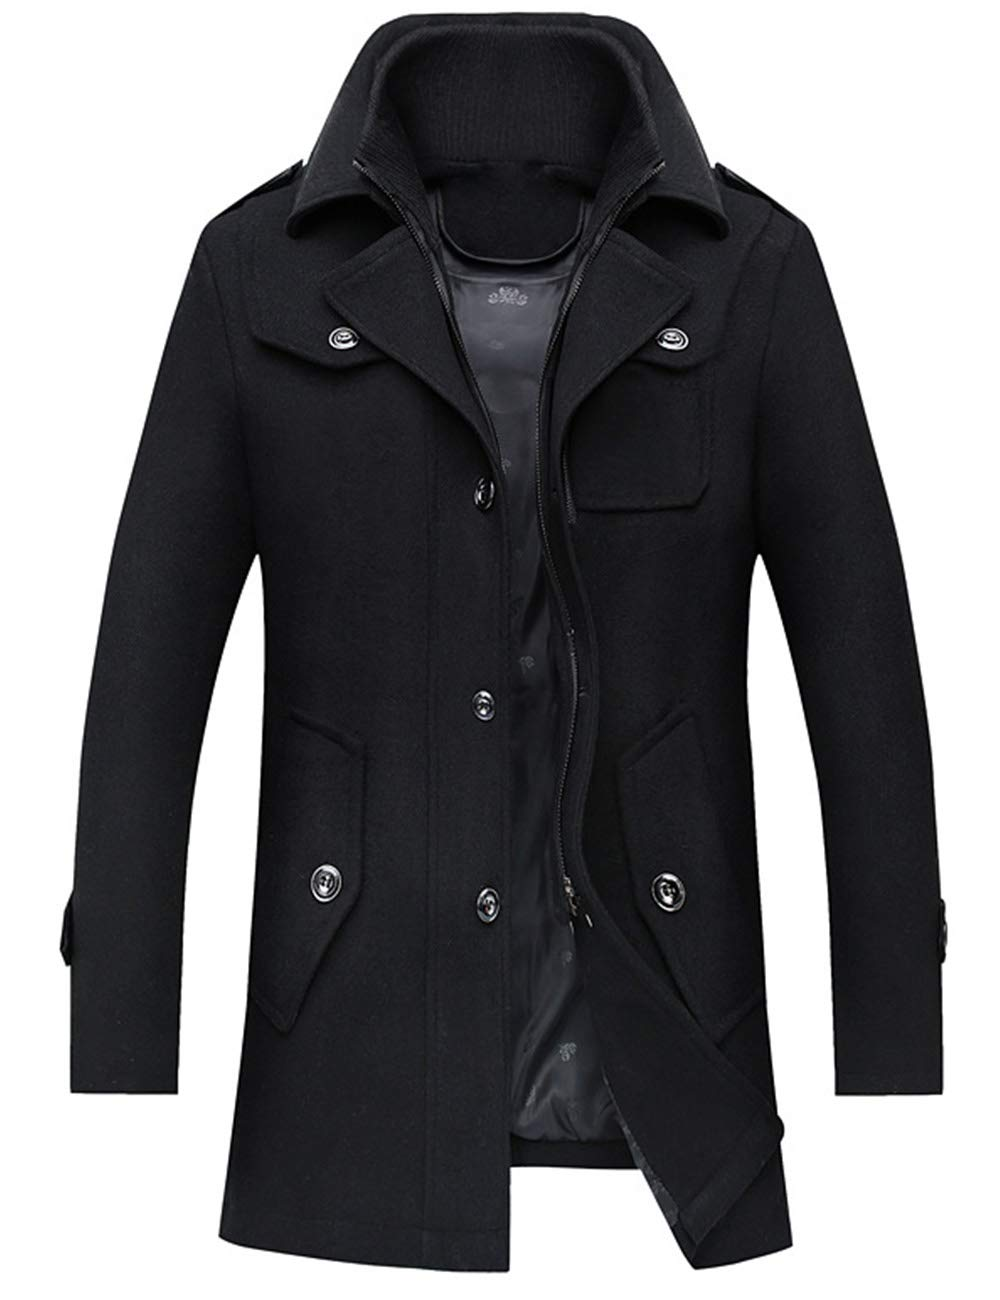 ZENTHACE Men's Winter Solid Single Breasted Thicken Warm Wool Blend Pea Coat Black L by ZENTHACE